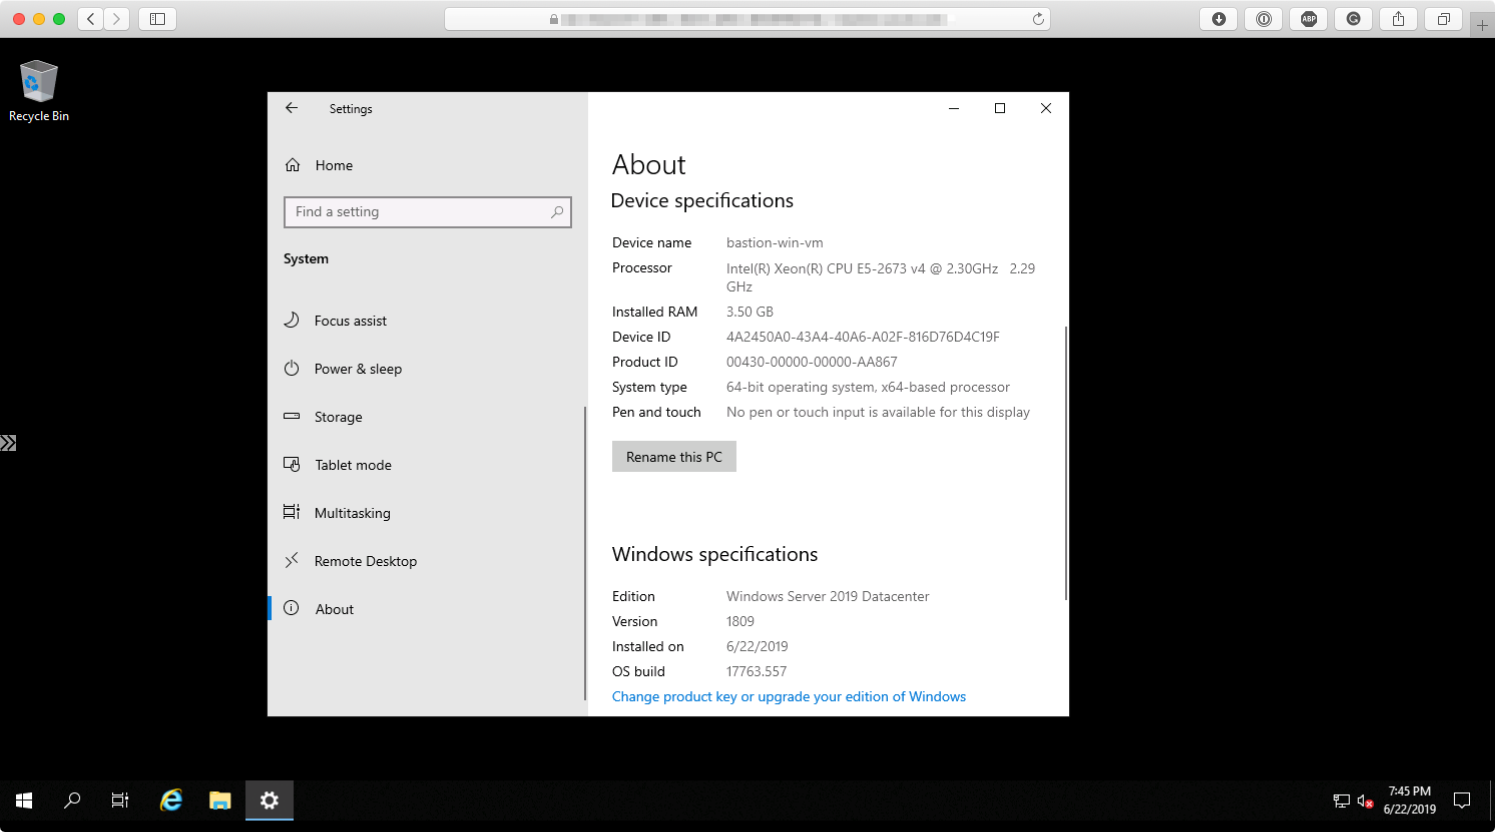 Connecting to the Windows VM